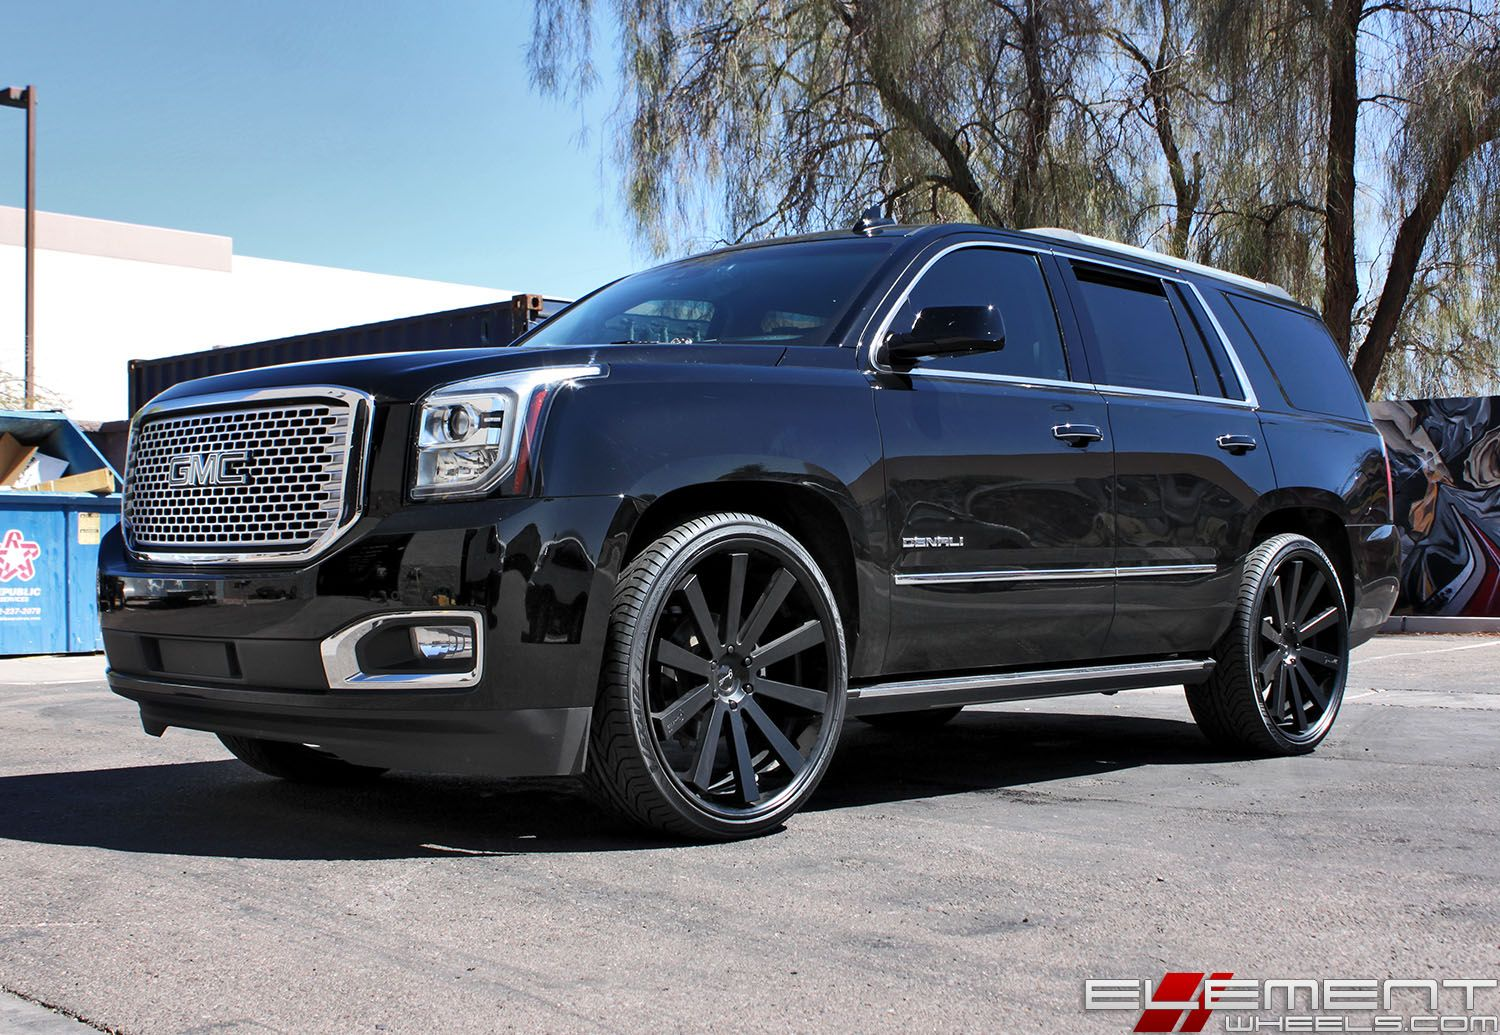 Black Yukon Denali Custom Wheels Chrome Grille Gmc Suv Lexus